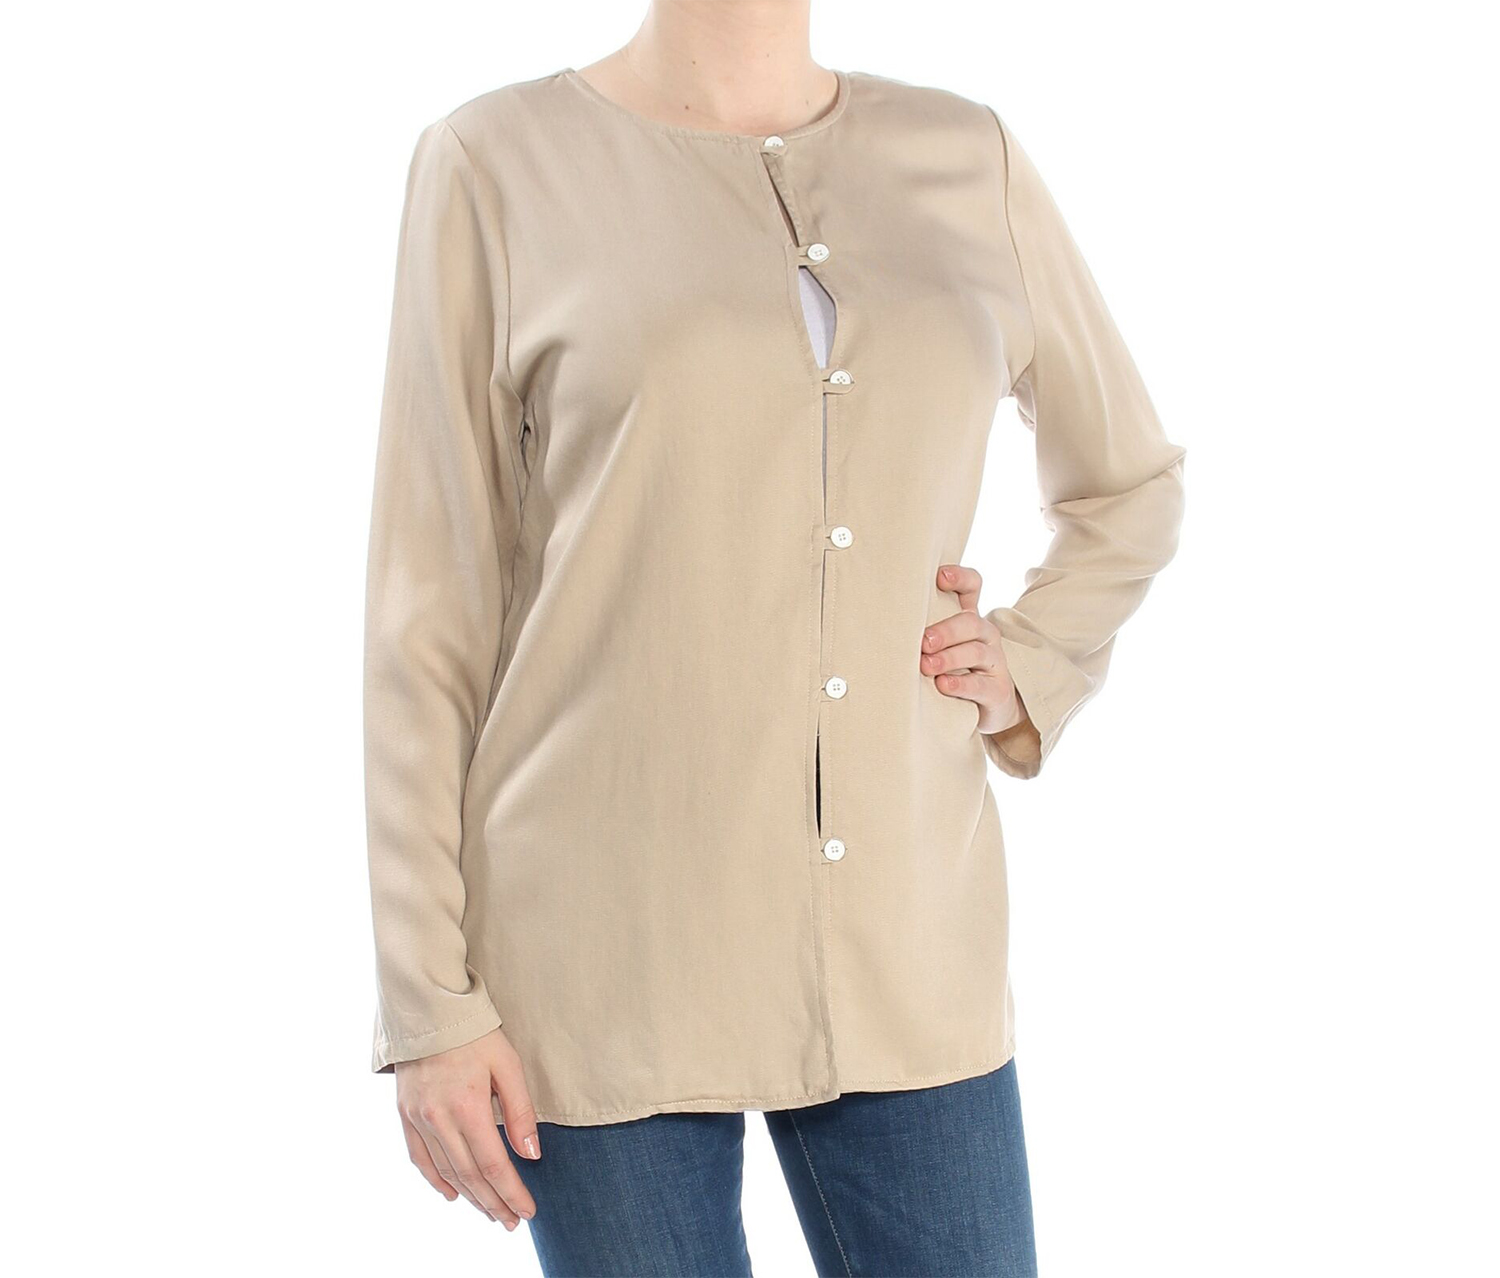 Karen Kane Women's Button Down Jacket, Beige